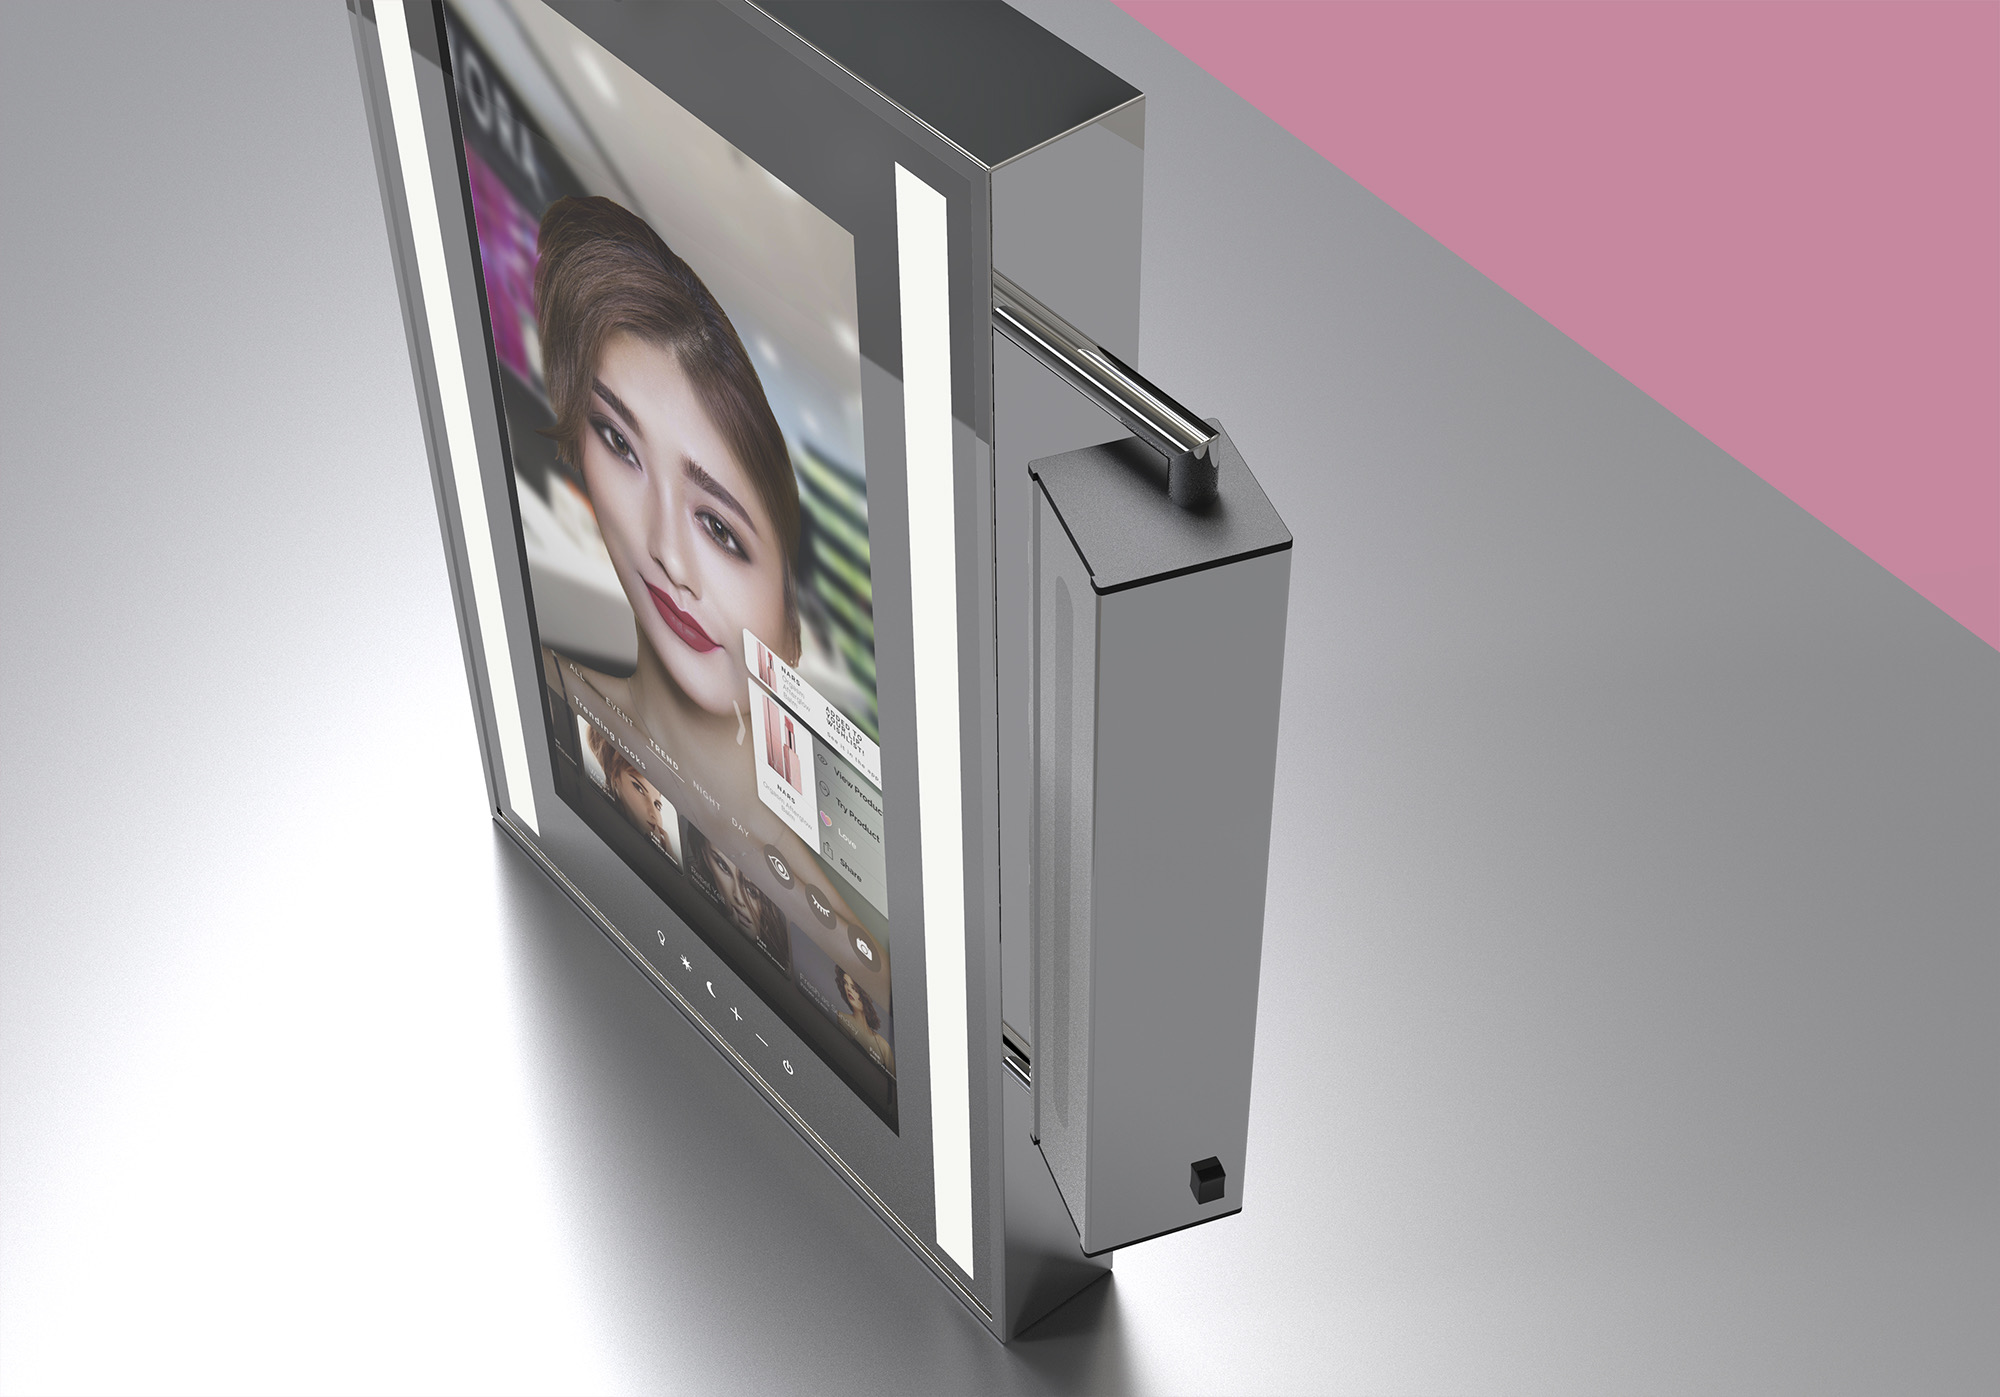 The cosmetic mirror has multiple camera placement options, including this side-mounted, vertically-adjustable option.